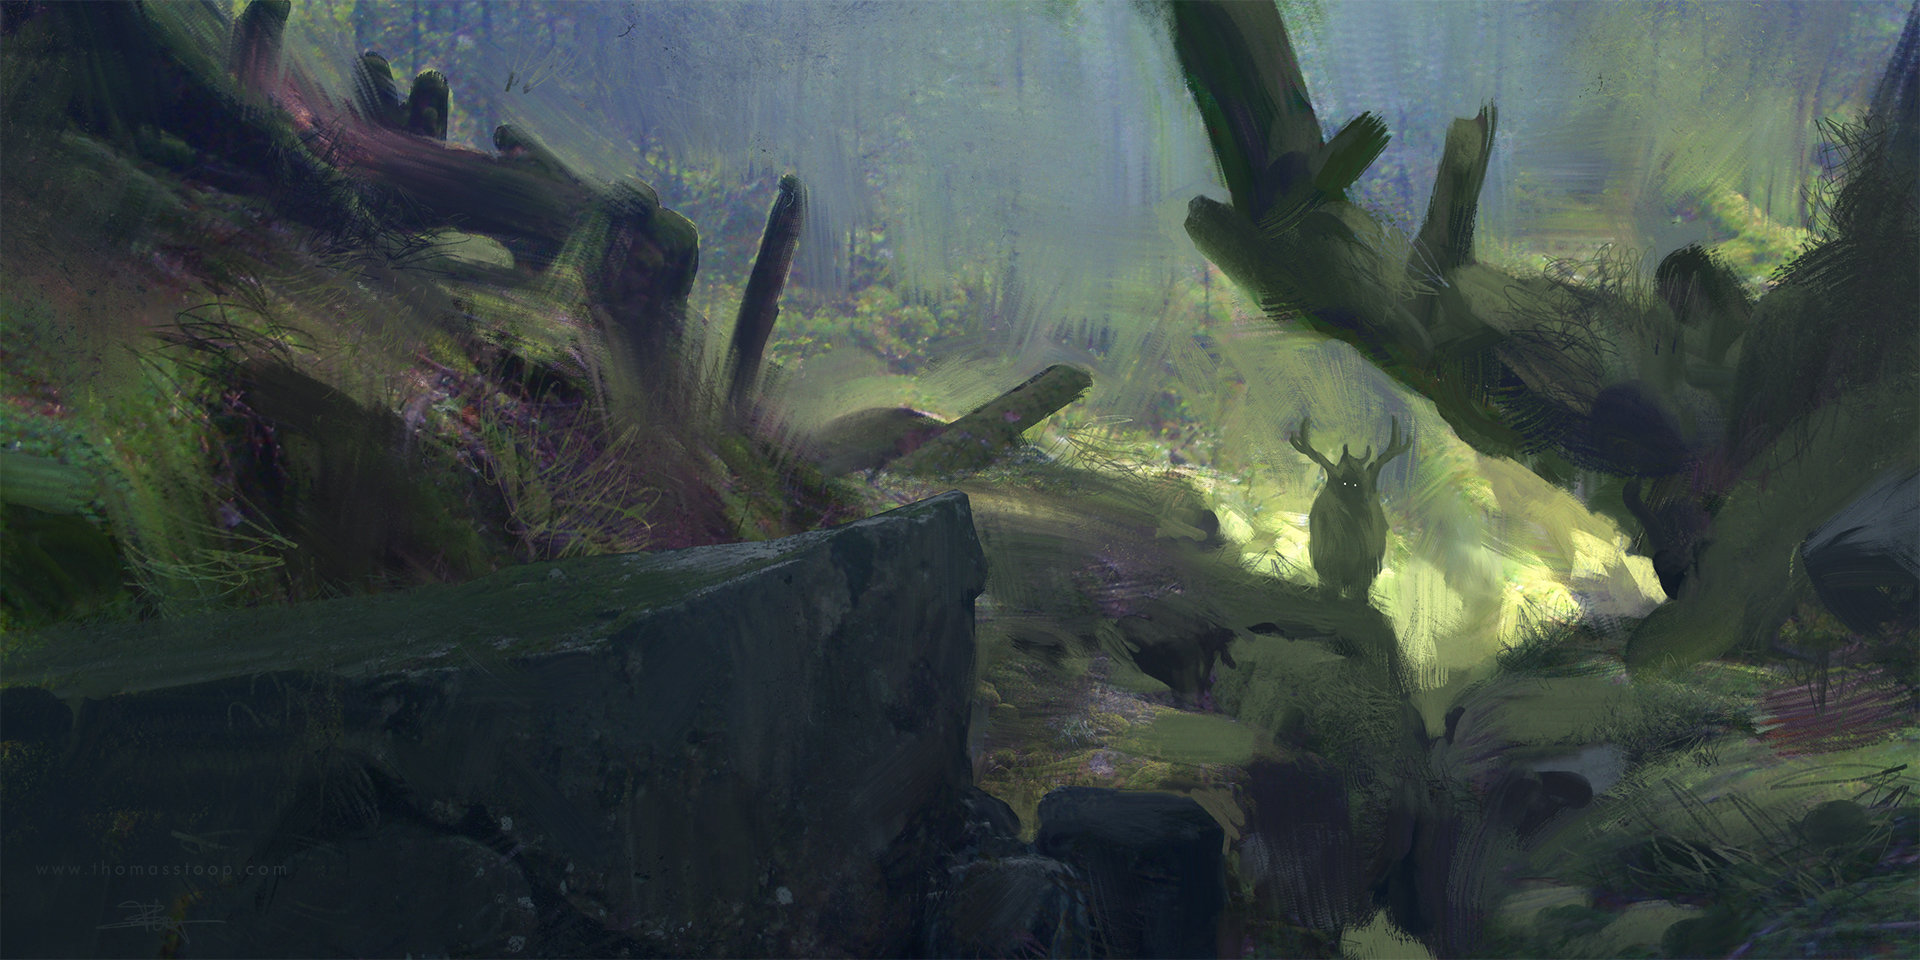 Thomas Stoop Concept Art Forest Dwellers